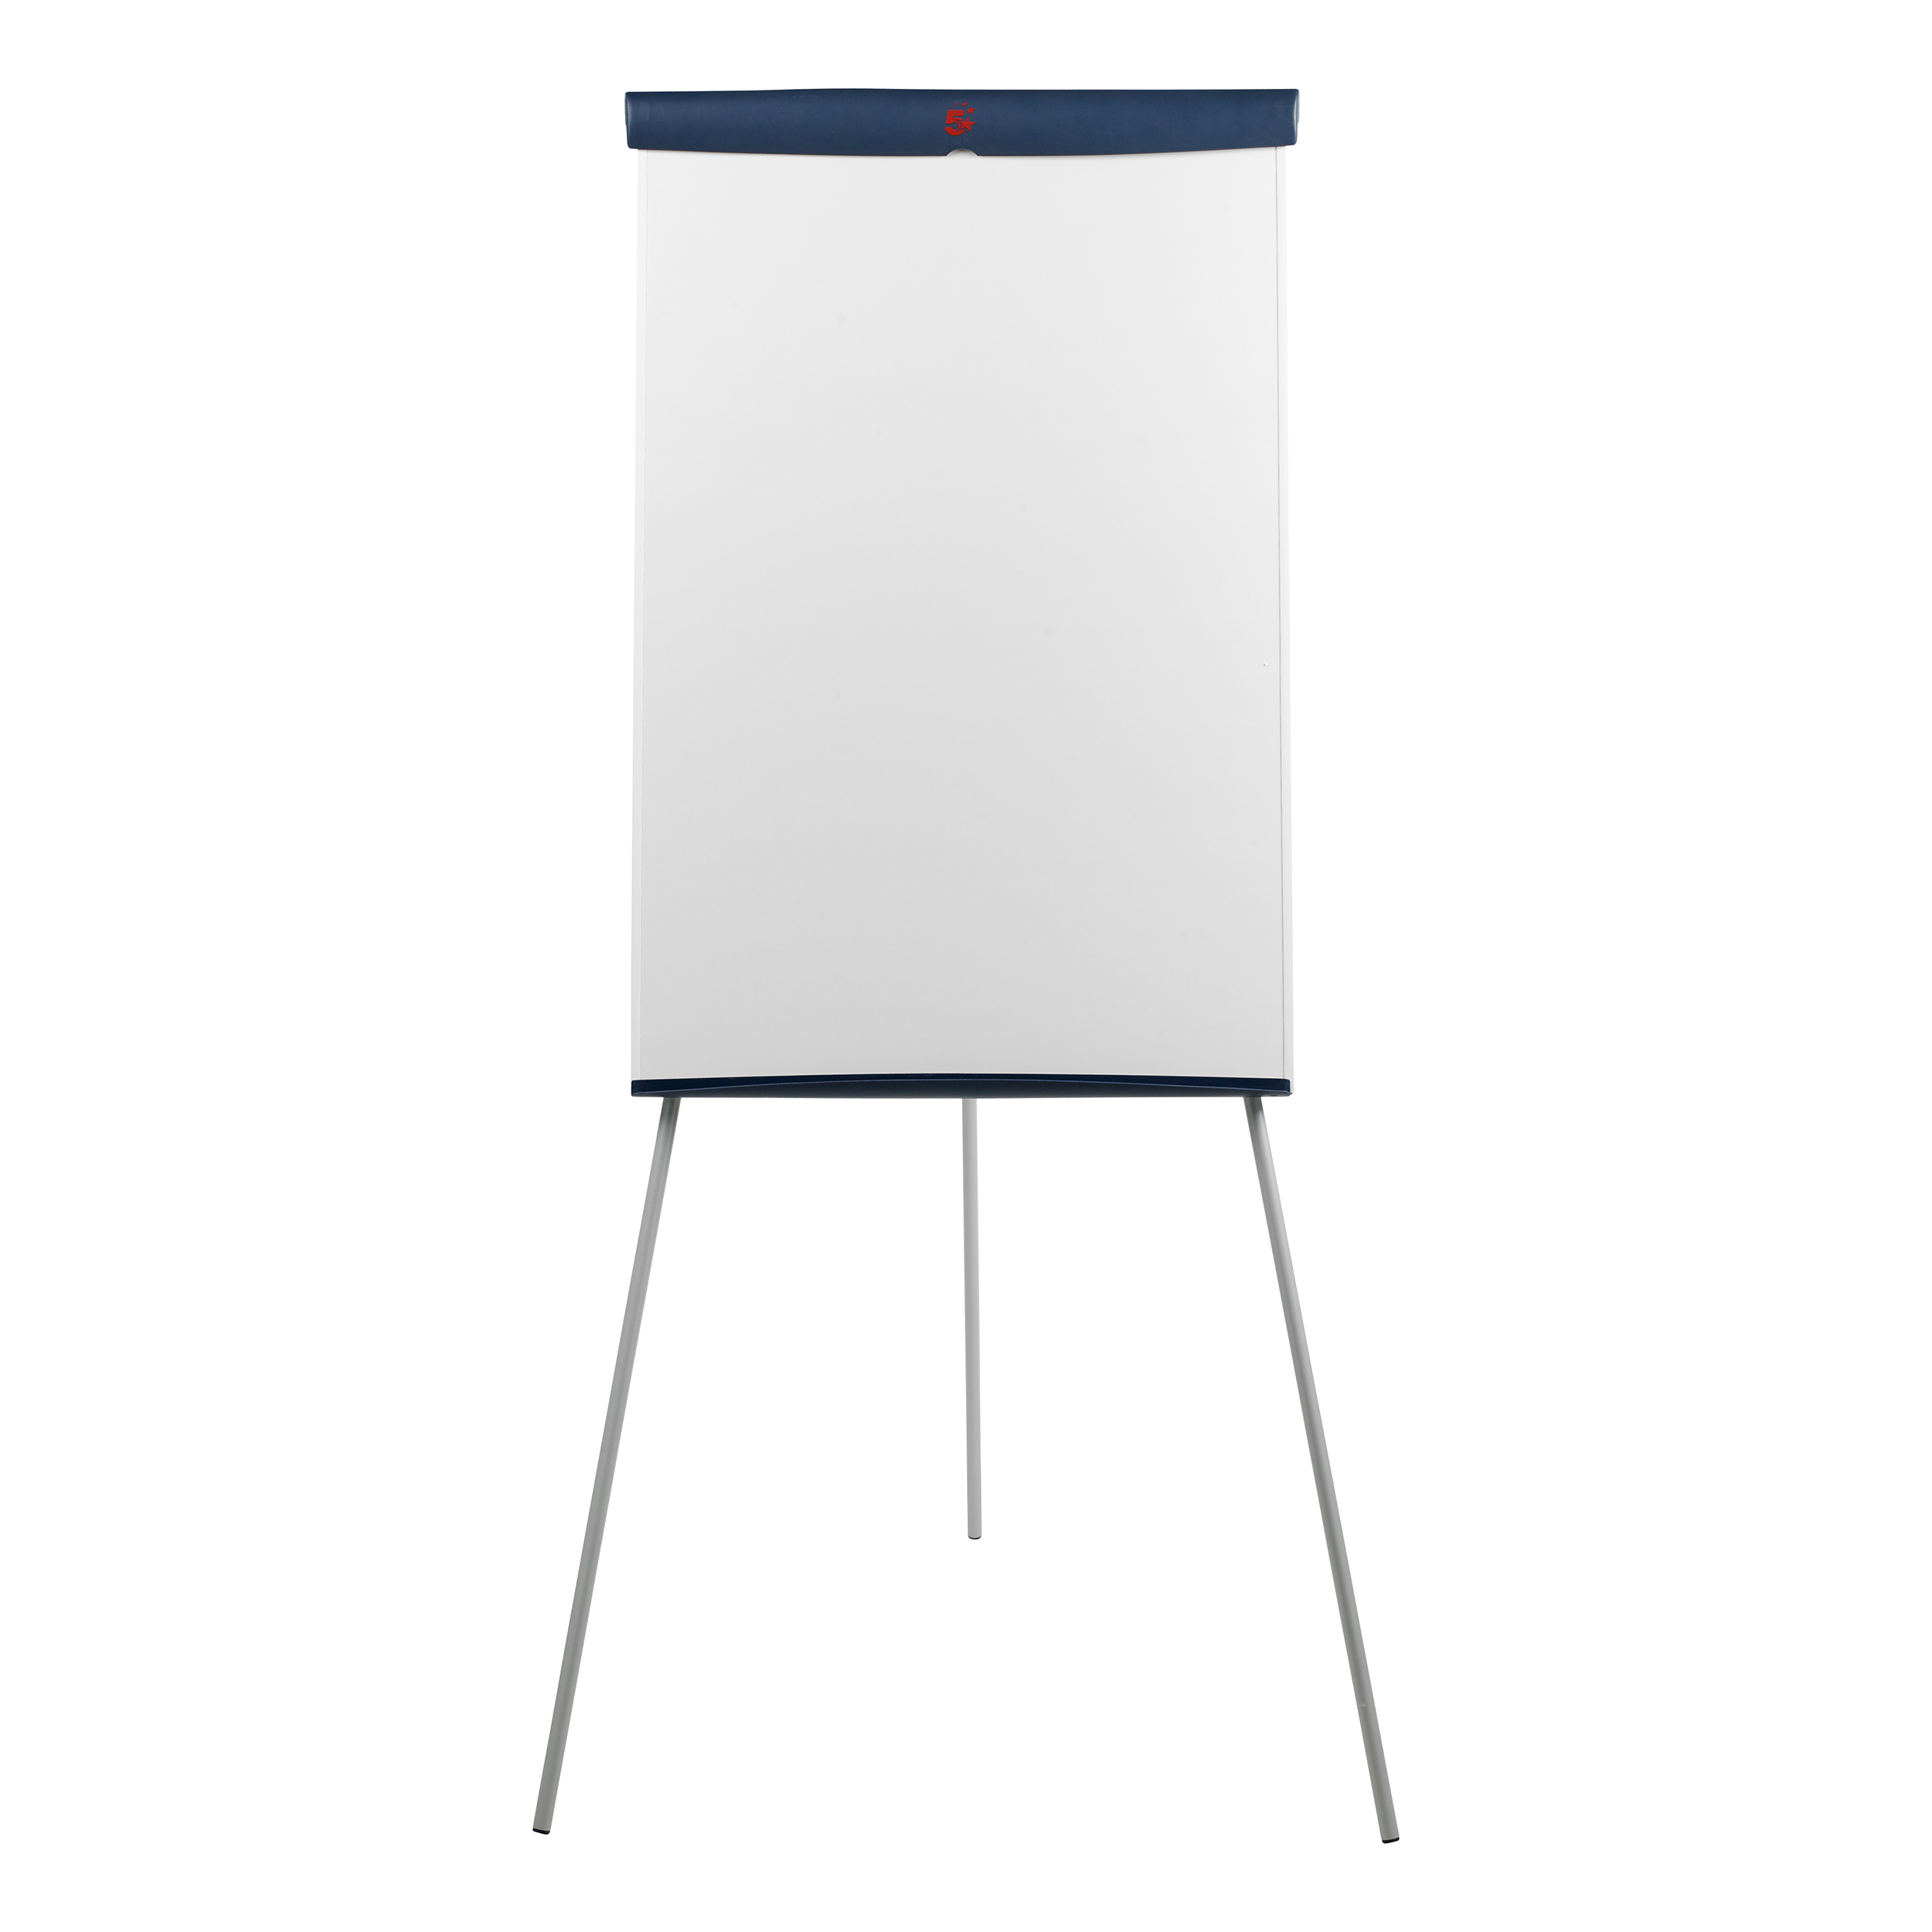 Easels 5 Star Office Flipchart Easel with W670xH990mm Board W700xD82xH1900mm Blue Trim